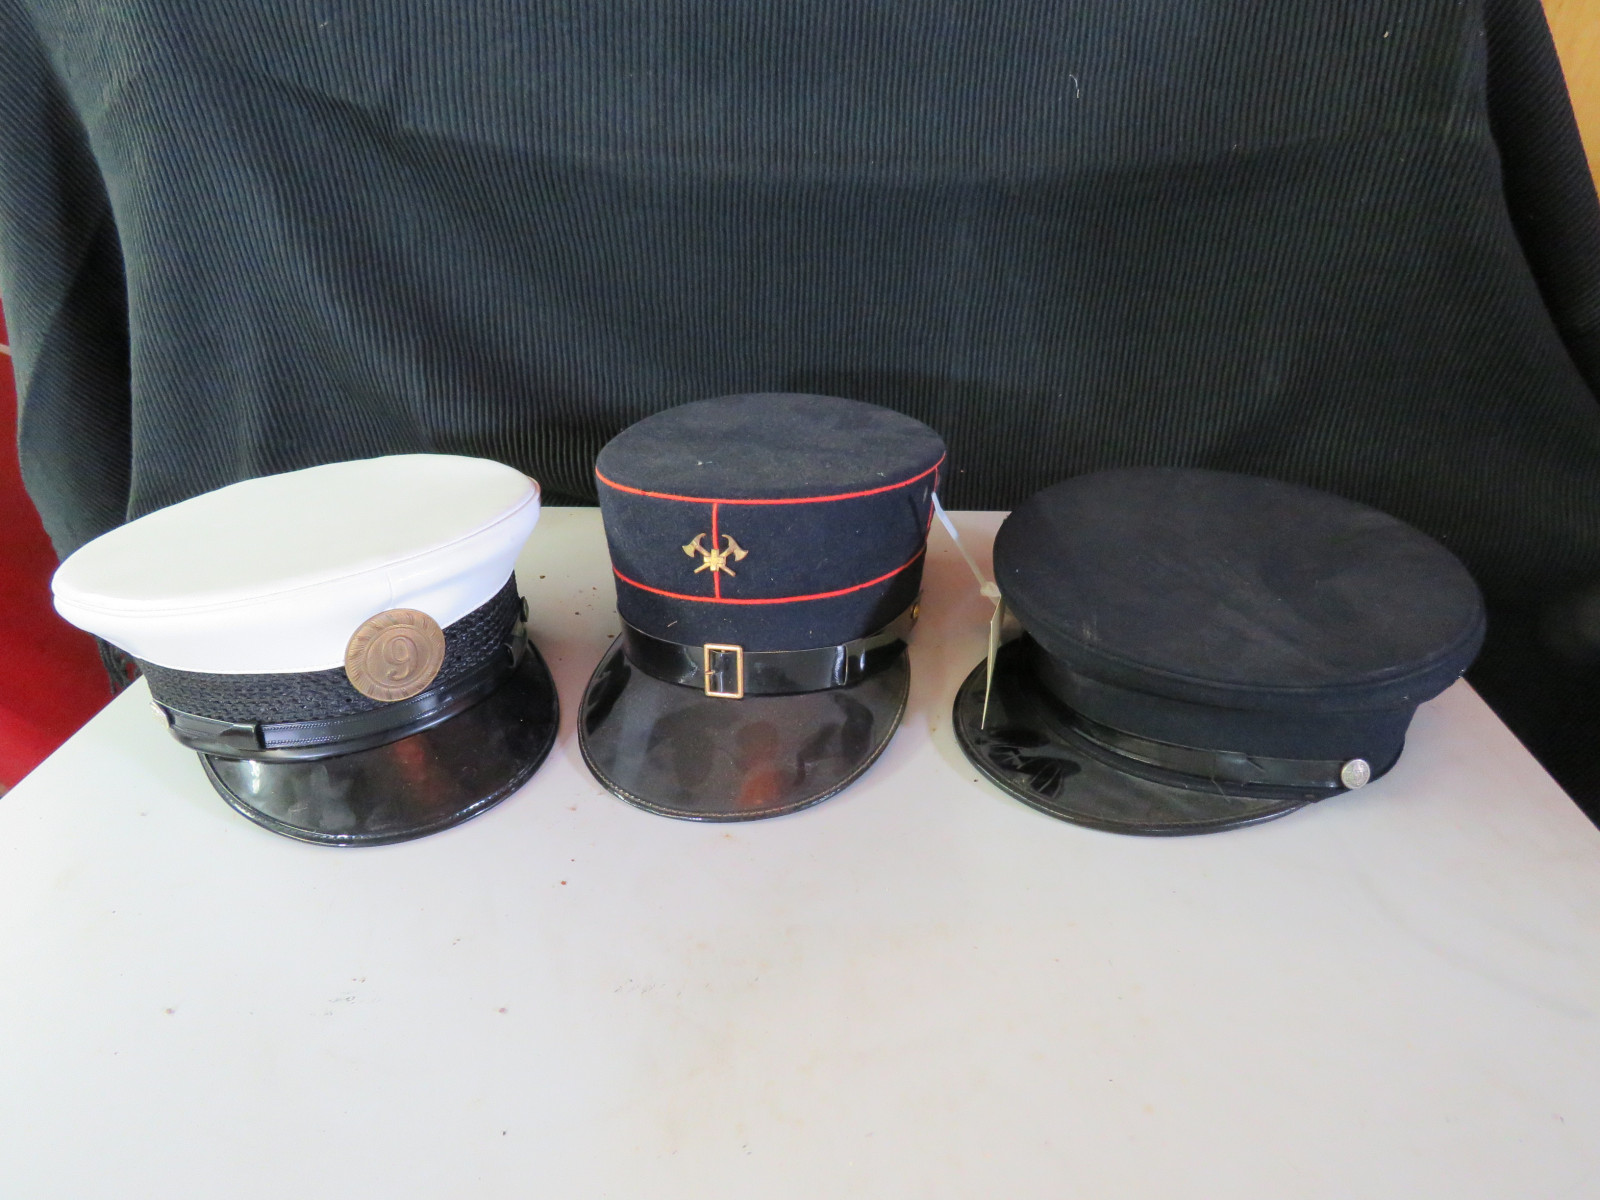 3 Vintage Fire Chief Helmets - Image 1